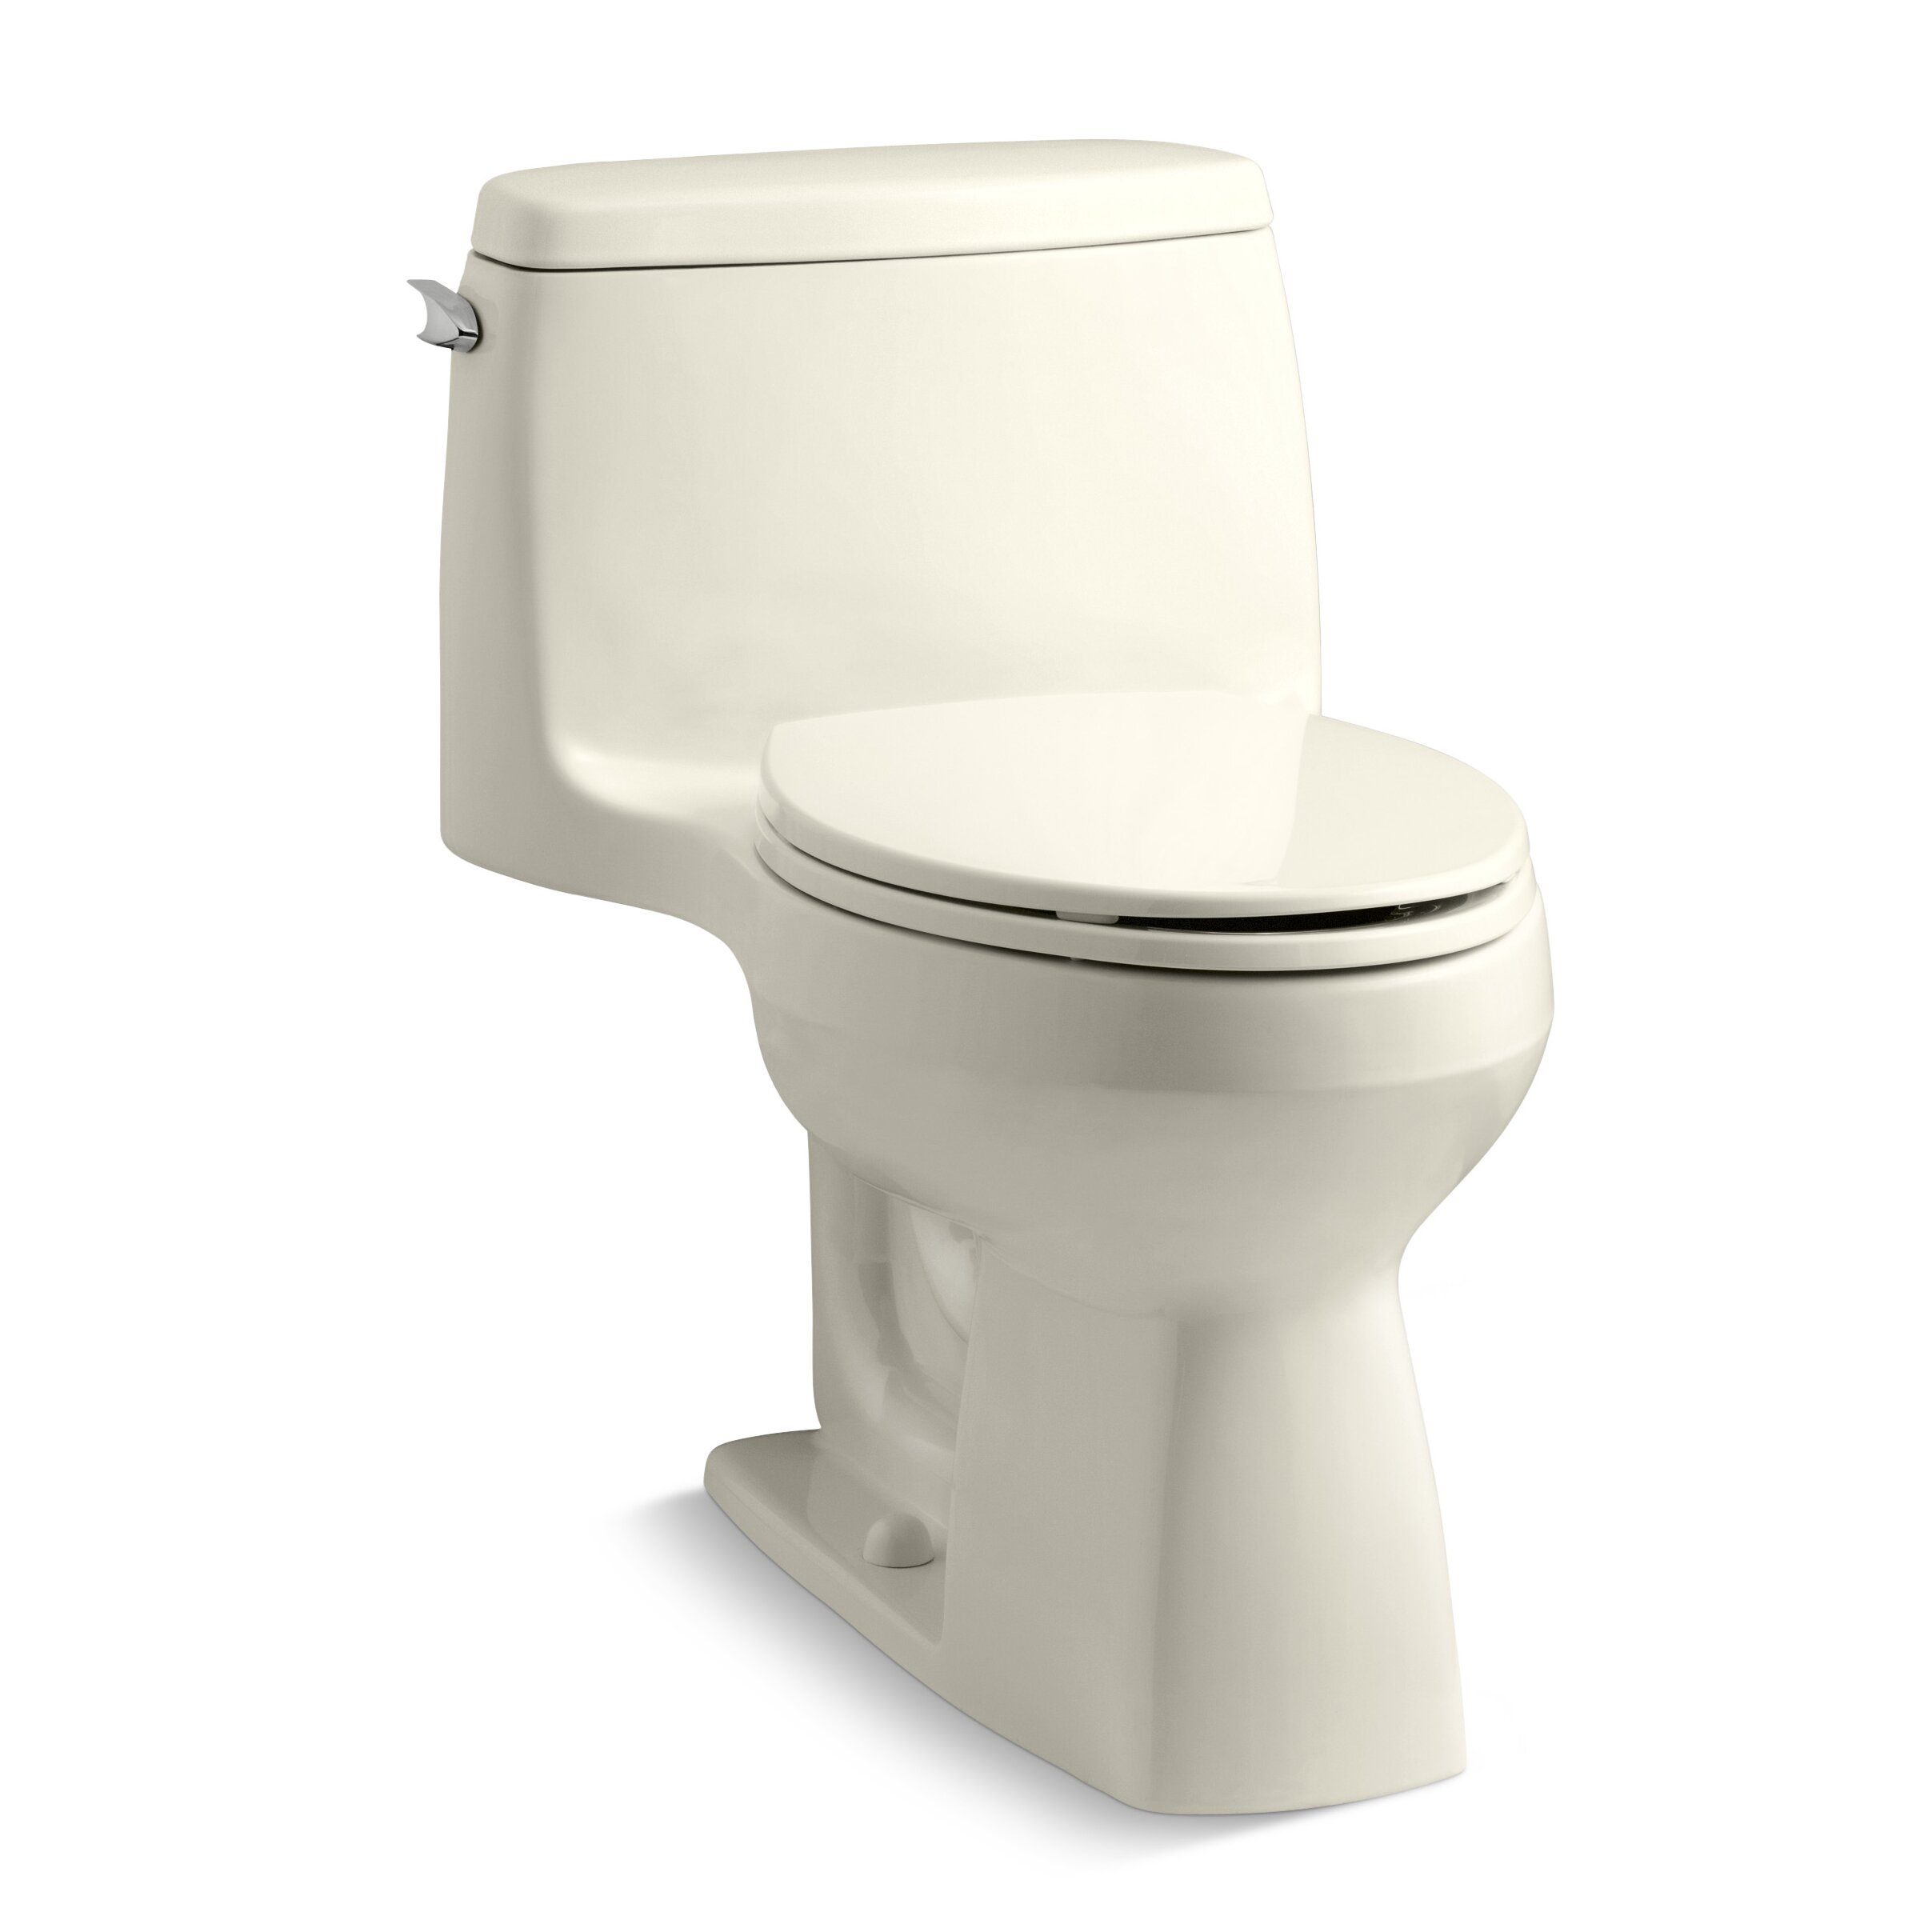 Kohler Santa Rosa >> Kohler Santa Rosa Comfort Height Compact 1.28 GPF Elongated 1 Piece Toilet & Reviews | AllModern